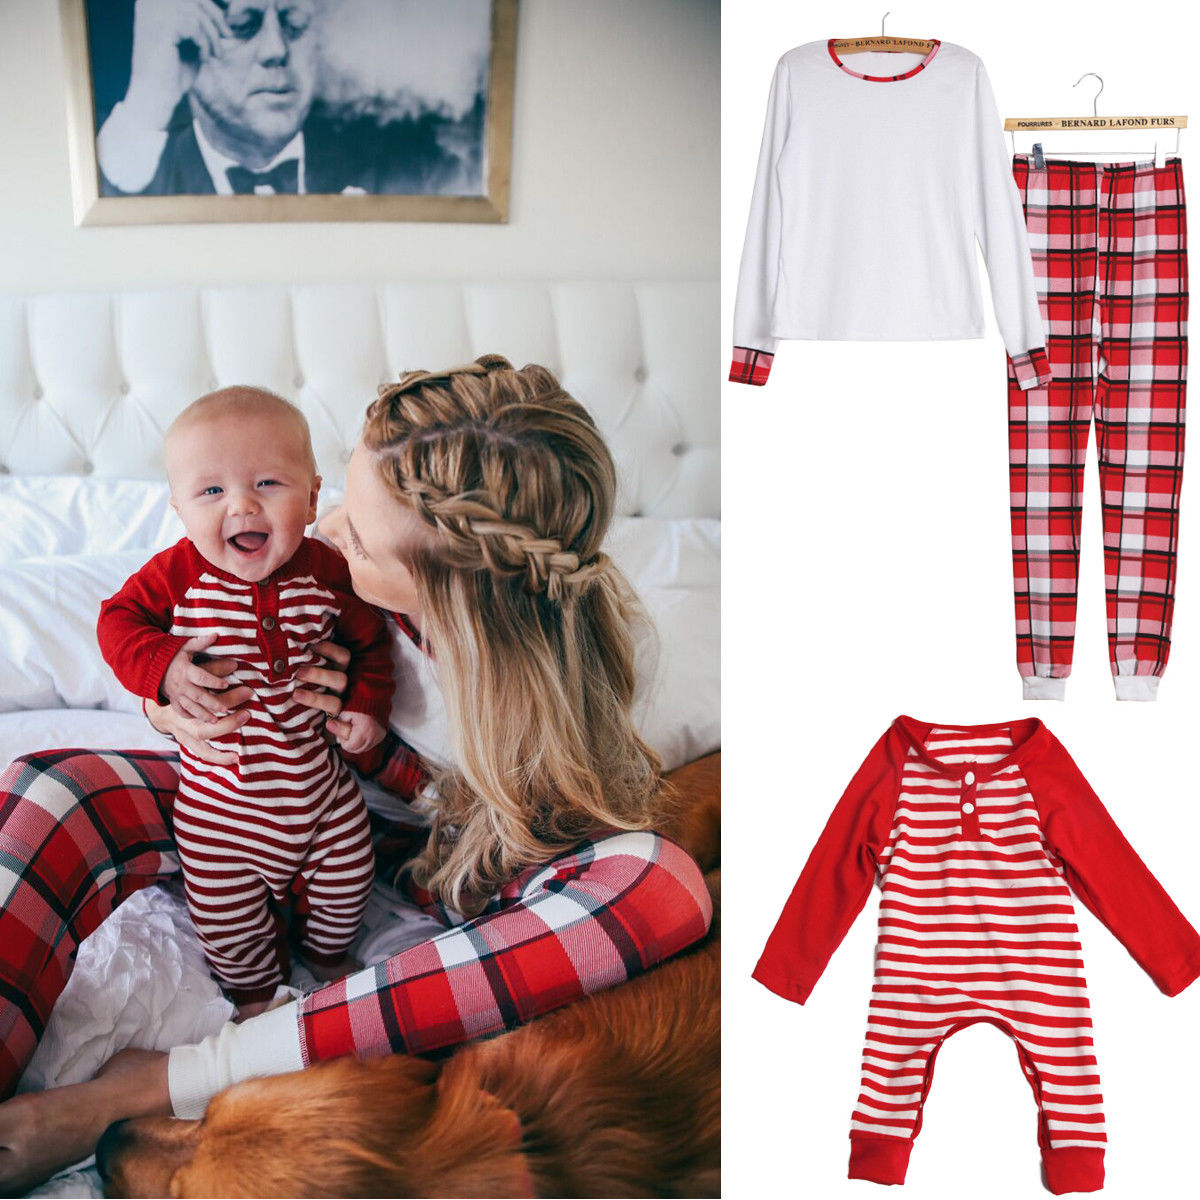 ce3b67922d91c US $4.05 7% OFF|pudcoco Newest Arrivals Hot Infant Newborn Toddler Family  Matching Christmas Pajamas Set Women Kids Baby Mom Sleepwear Nightwear-in  ...